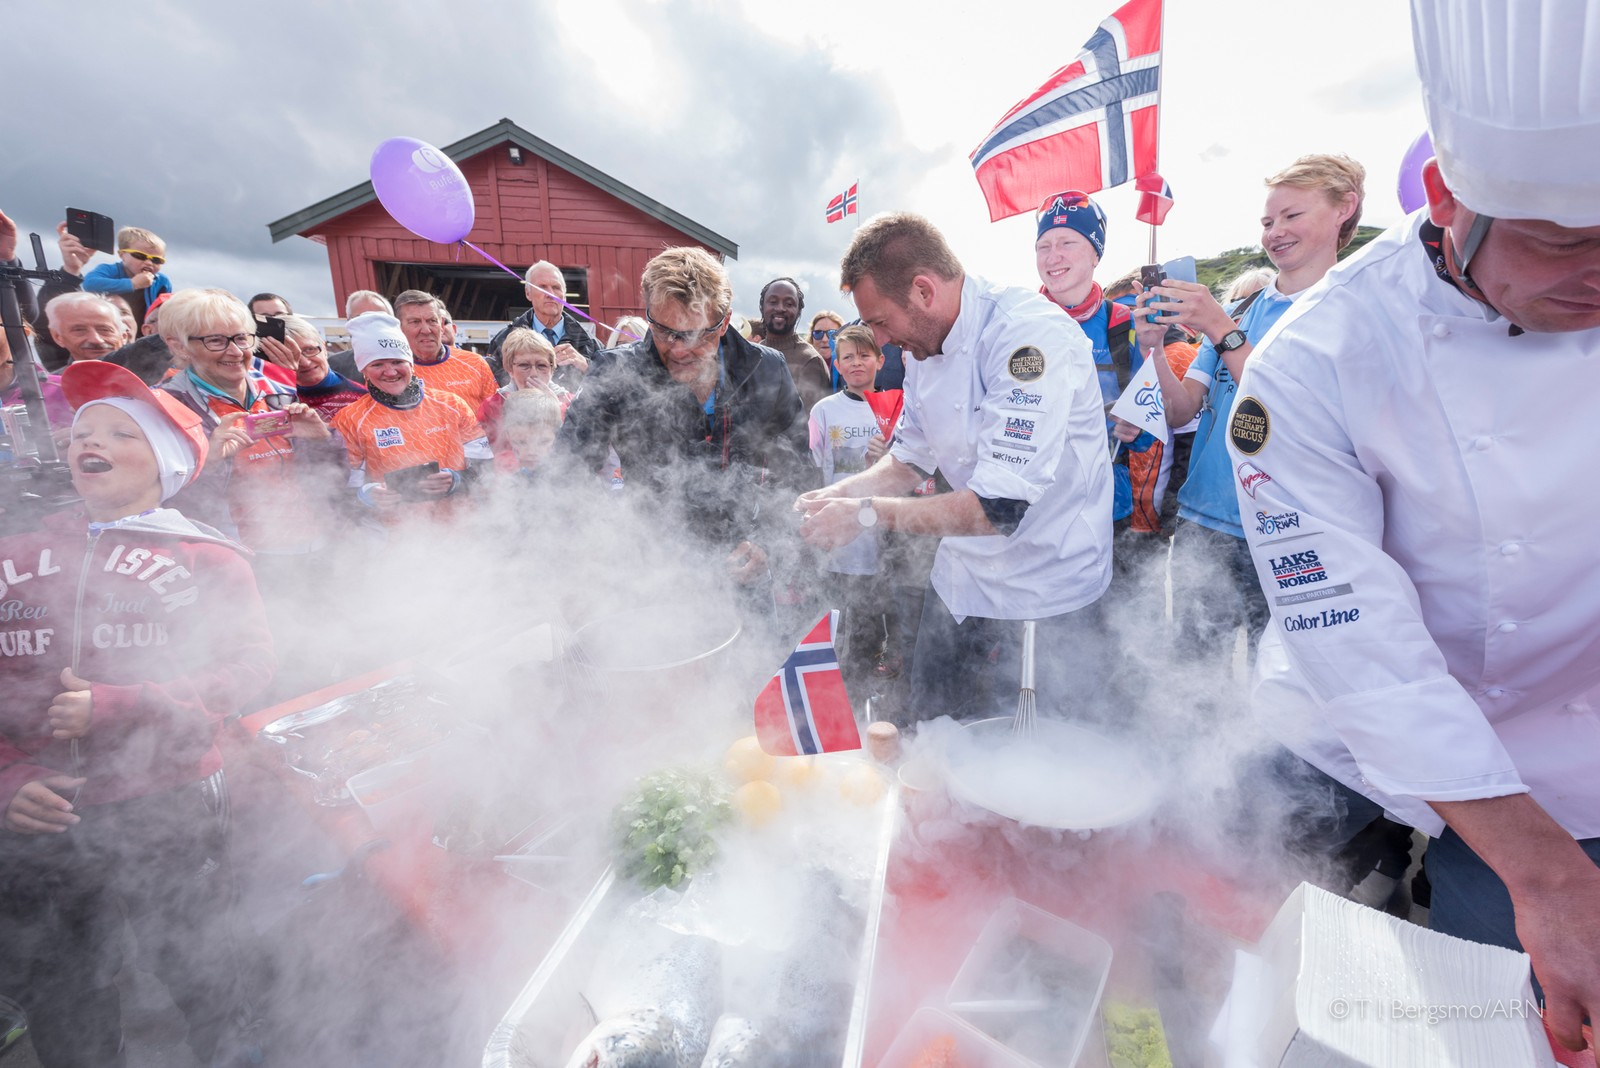 Flying Culinary Circus under Arctic Race.